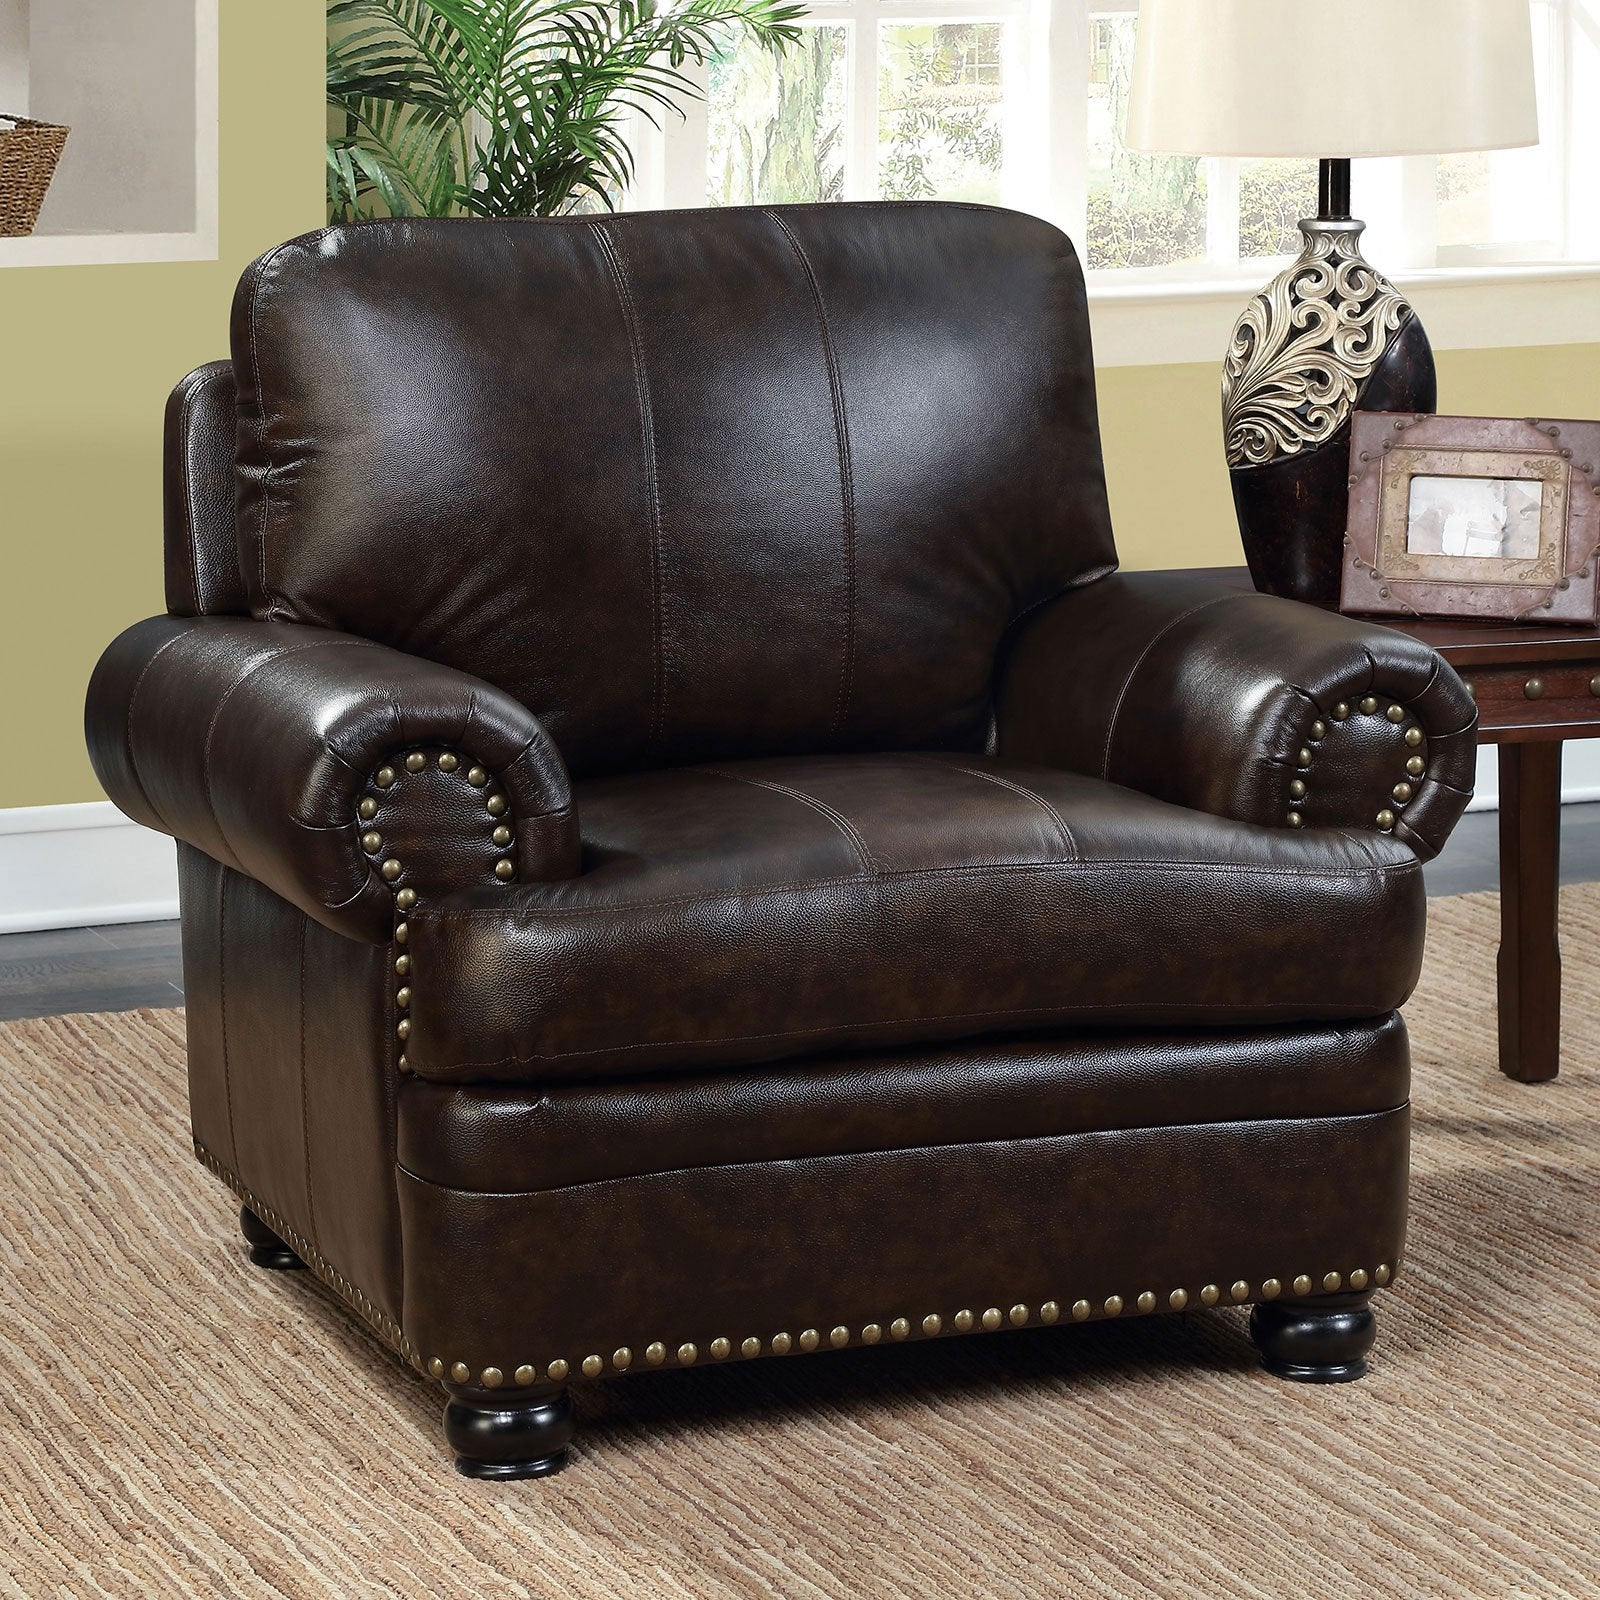 REINHARDT Transitional Chair, Dark Brown - InteriorDesignsToGo.com